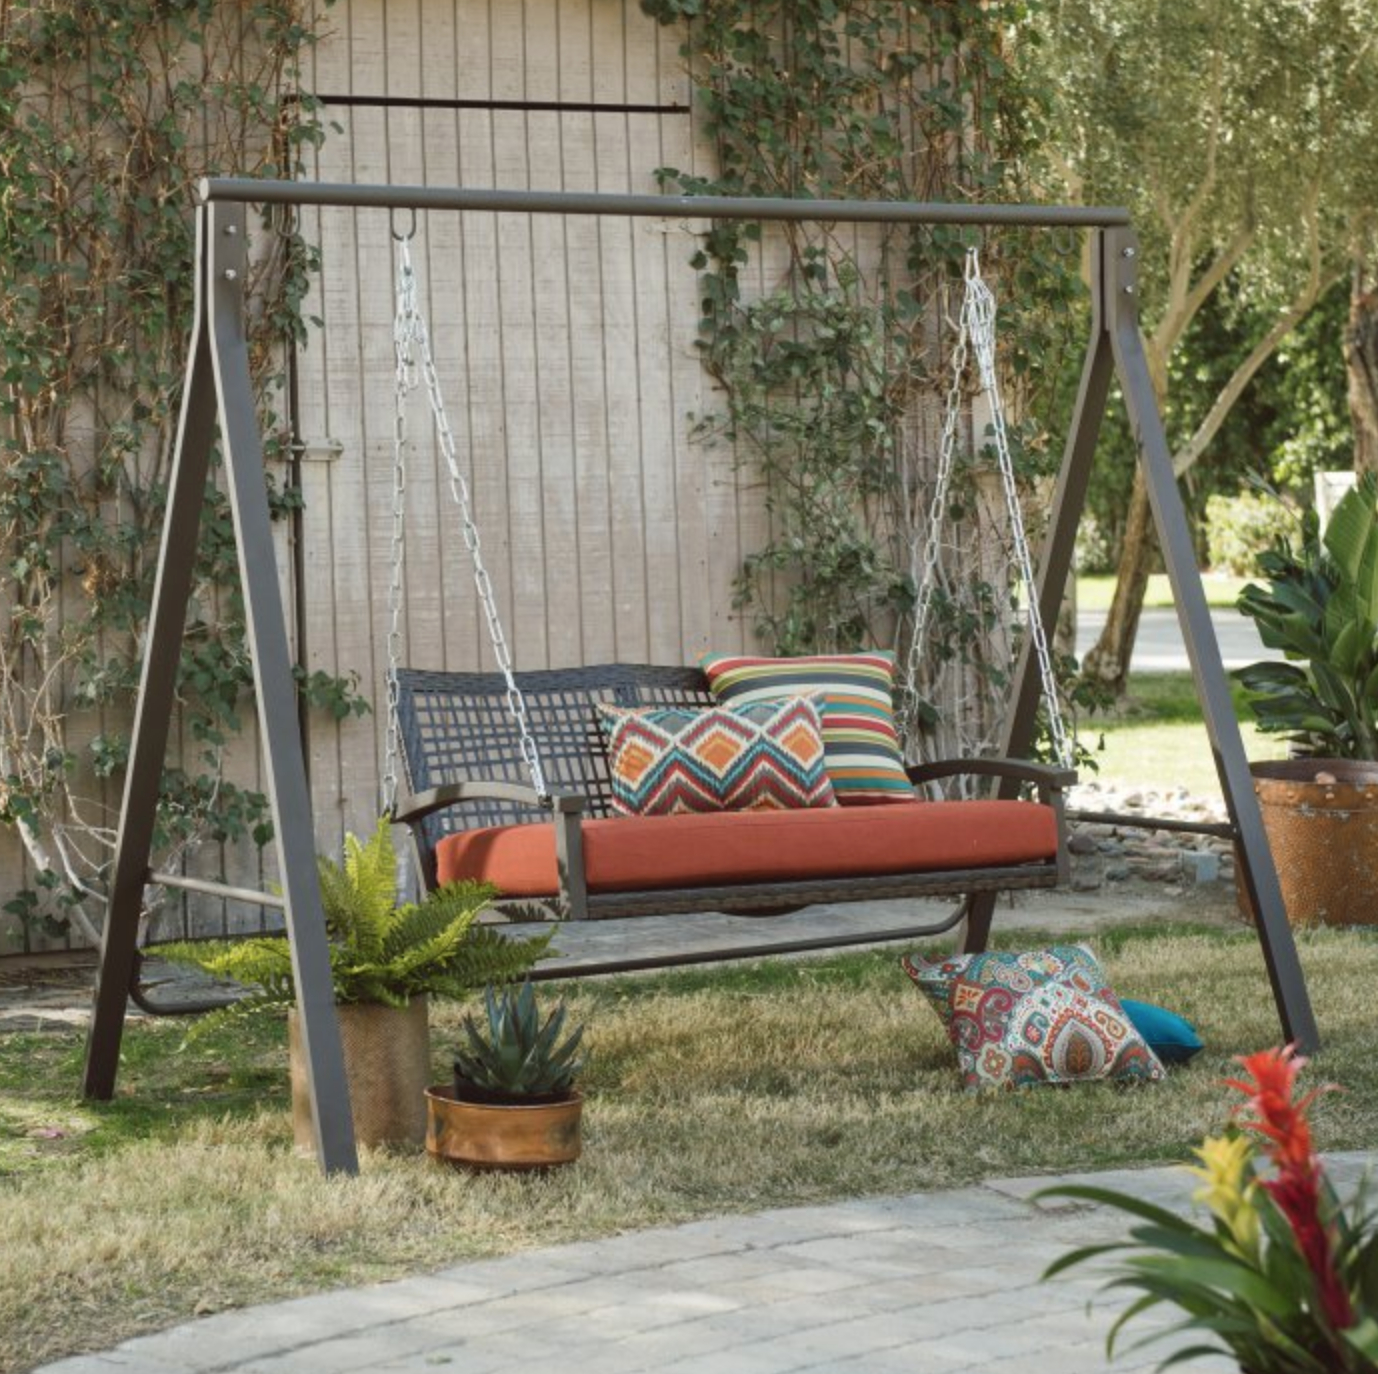 """Favorite Patio Metal Swing Stand A Frame Steel For 4"""" 5"""" Swings Lawn Inside Patio Porch Swings With Stand (View 3 of 30)"""